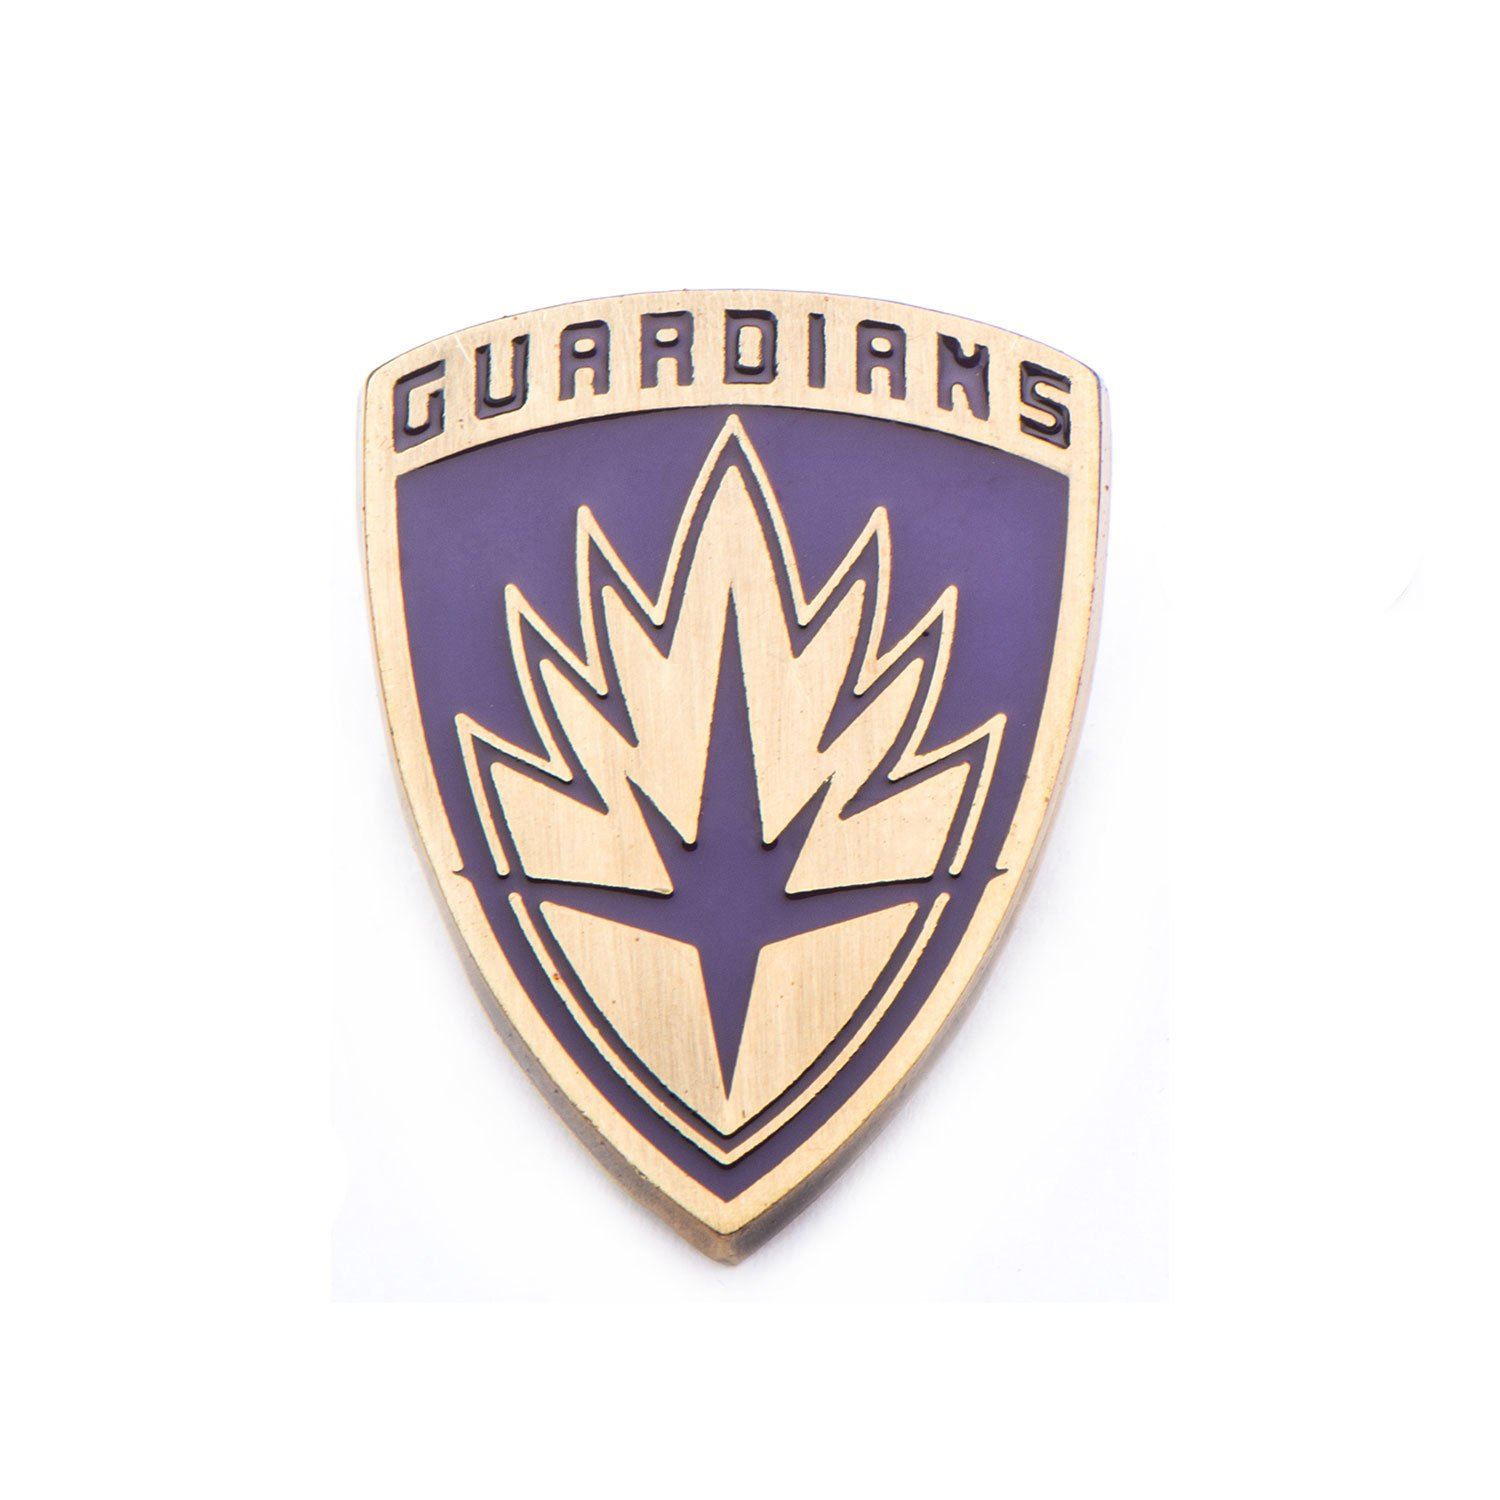 Marvel Guardians of the Galaxy Shield Base Metal Lapel Pin Inox GOTGPIN01